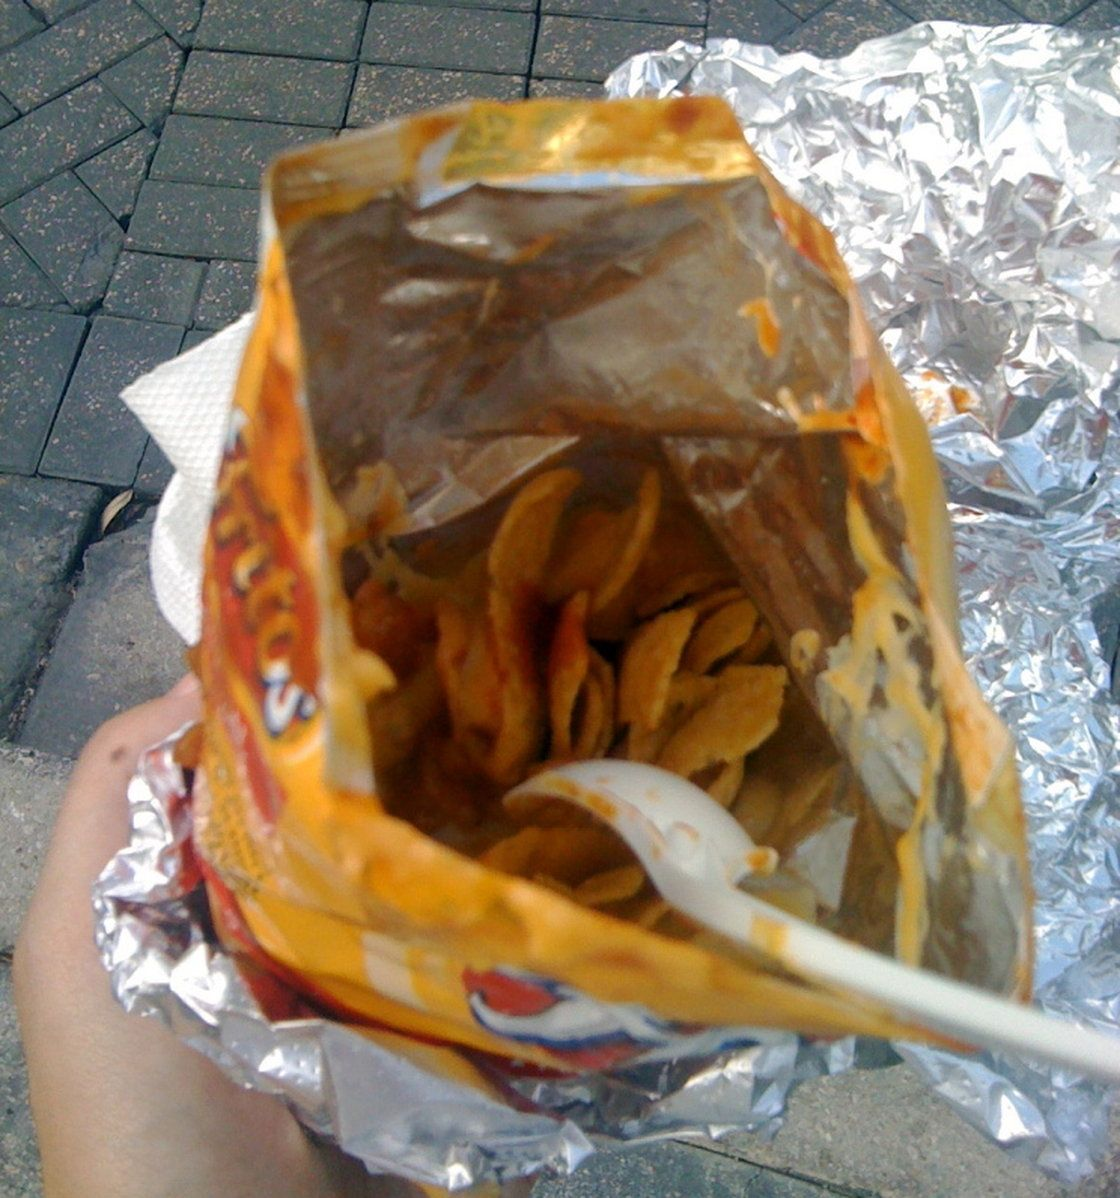 A New Yorker's first Frito pie experience.